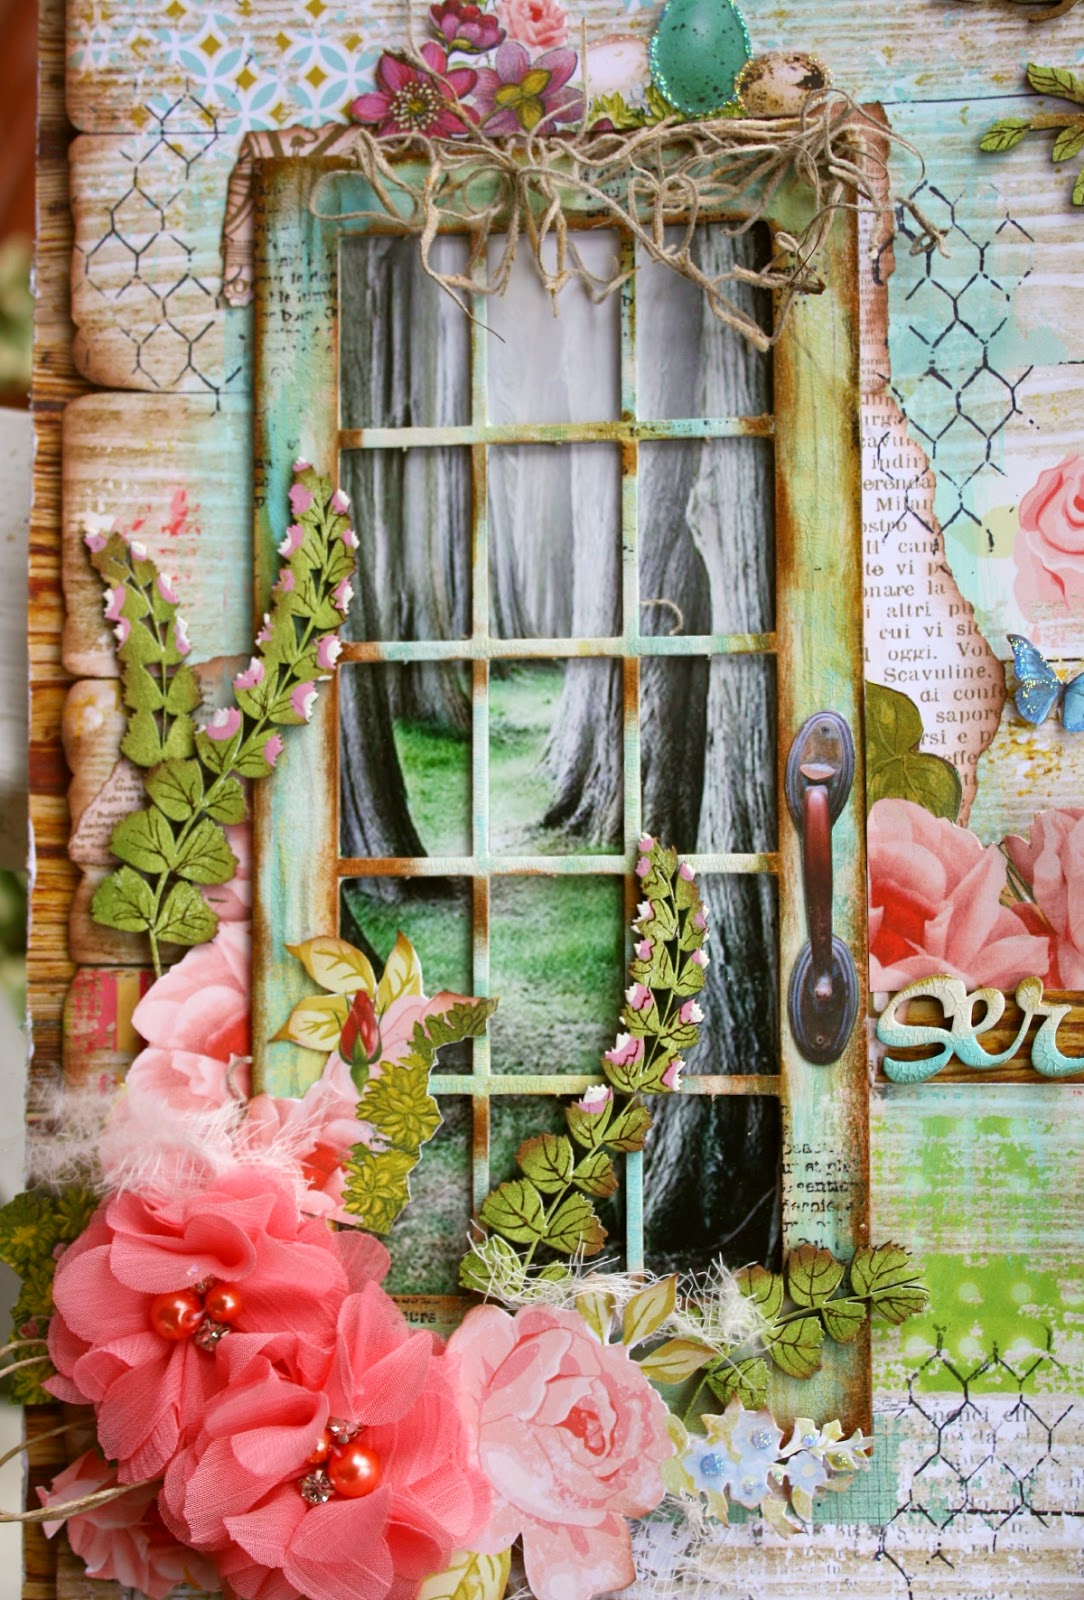 Scrapbook page by Gabrielle Pollacco using Dusty Attic Chipboard and Websters Pages Paper, Nest Collection